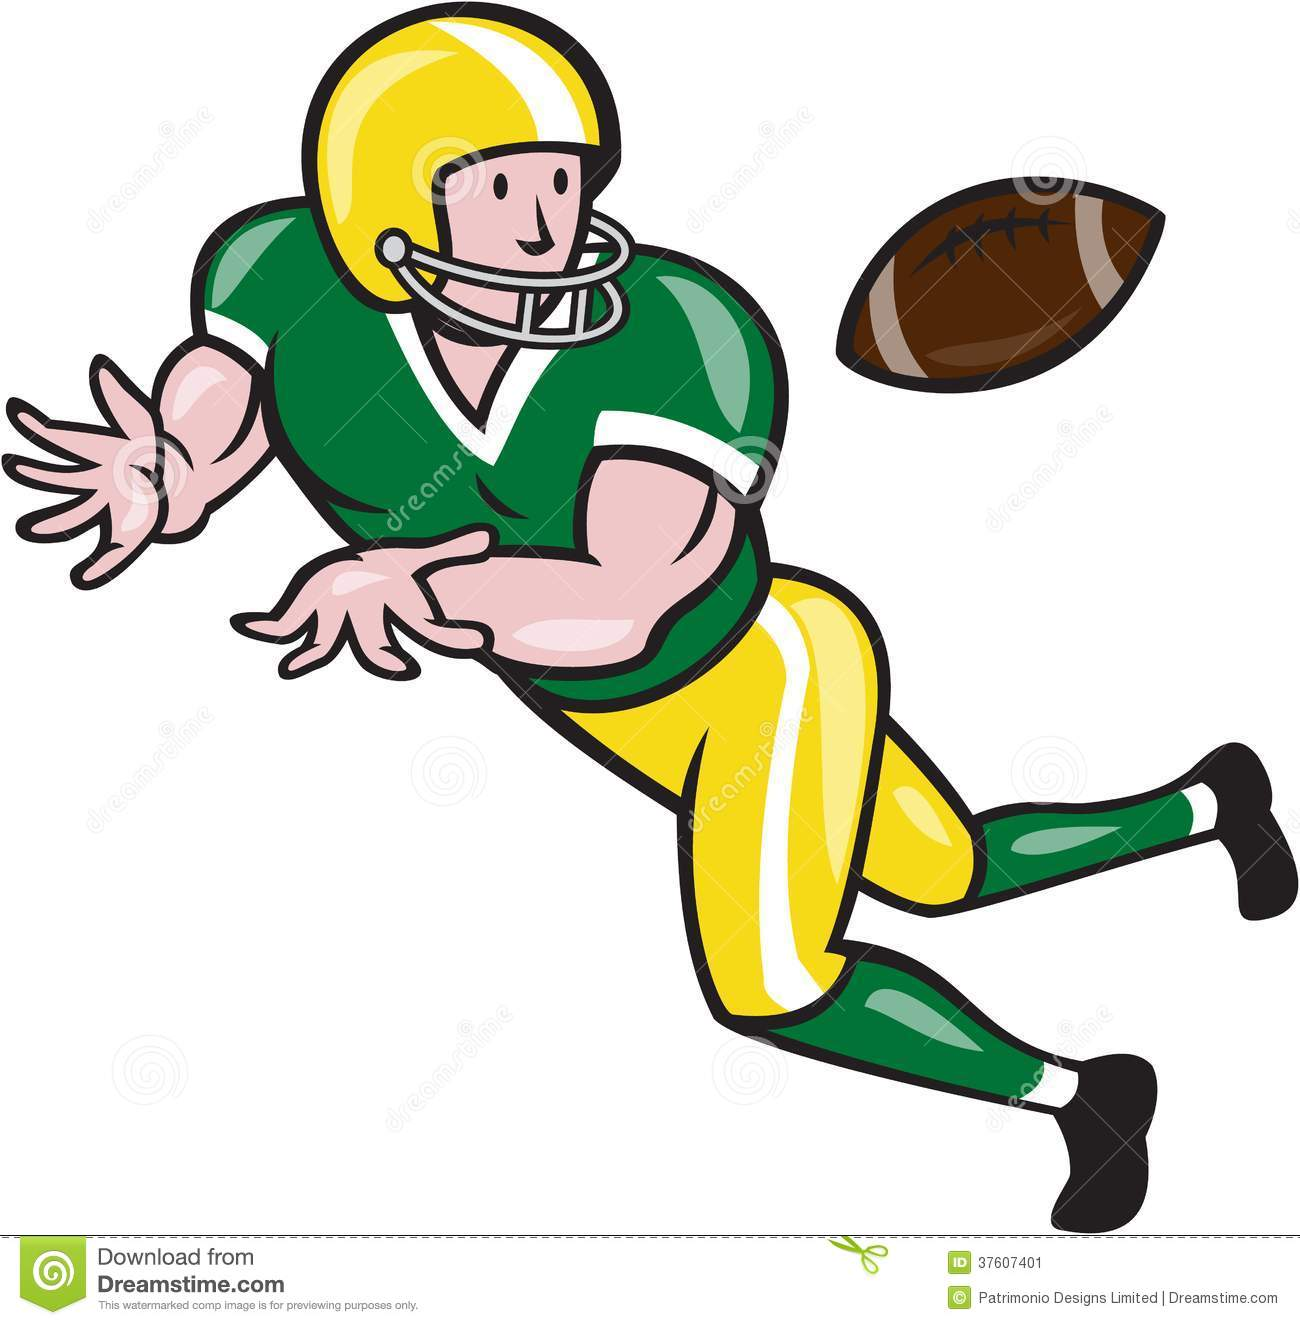 Receiver clipart touchdown Free american%20football%20player%20clipart Football American Clipart